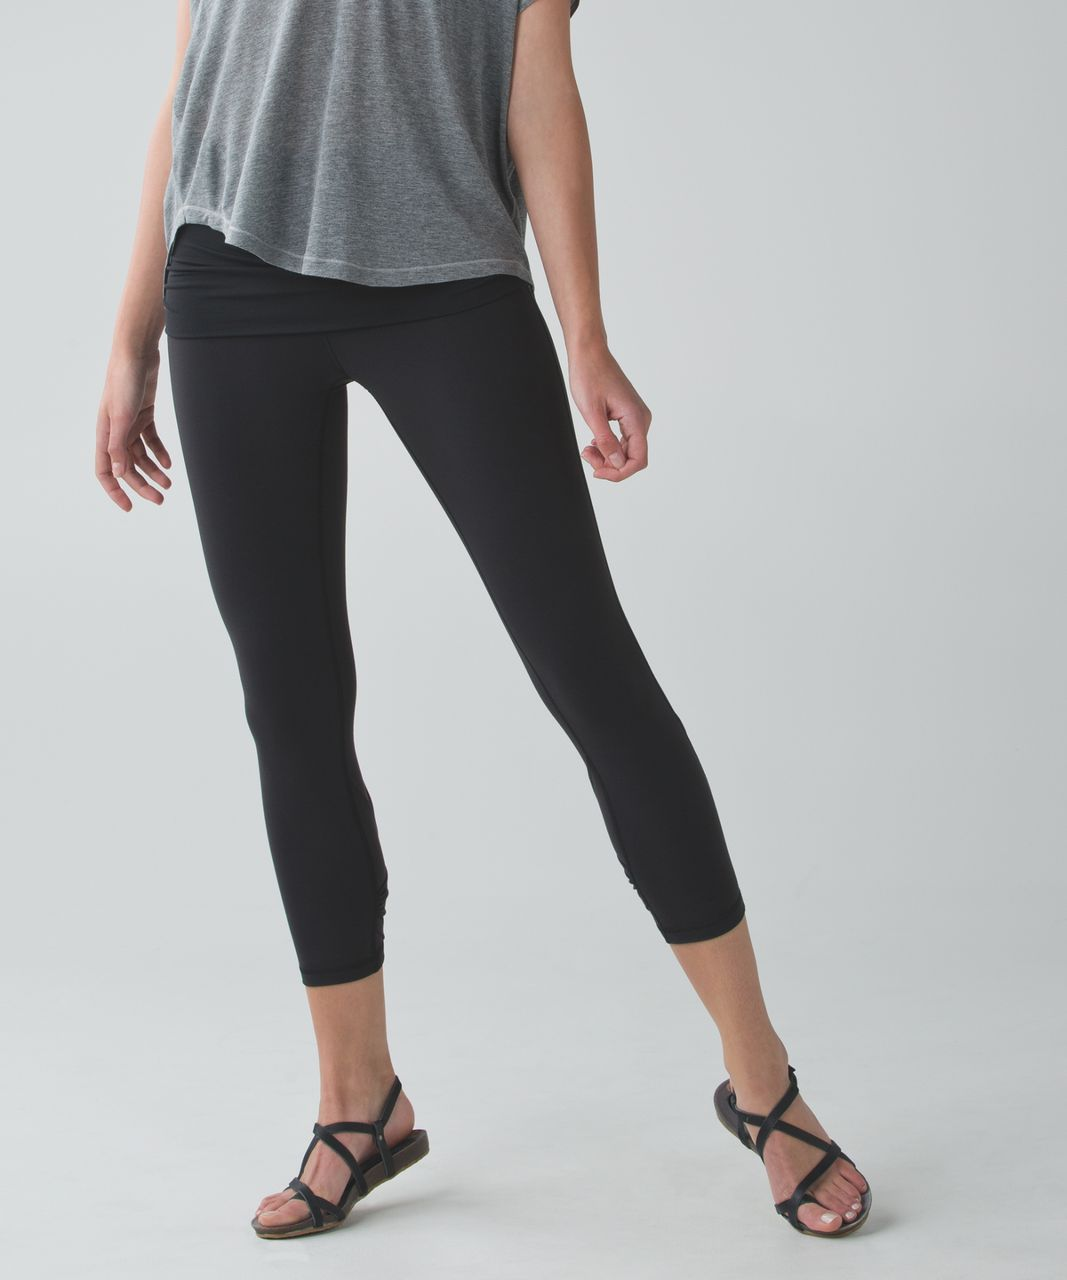 Lululemon Wunder Under Pant (Roll Down - Dance) - Black